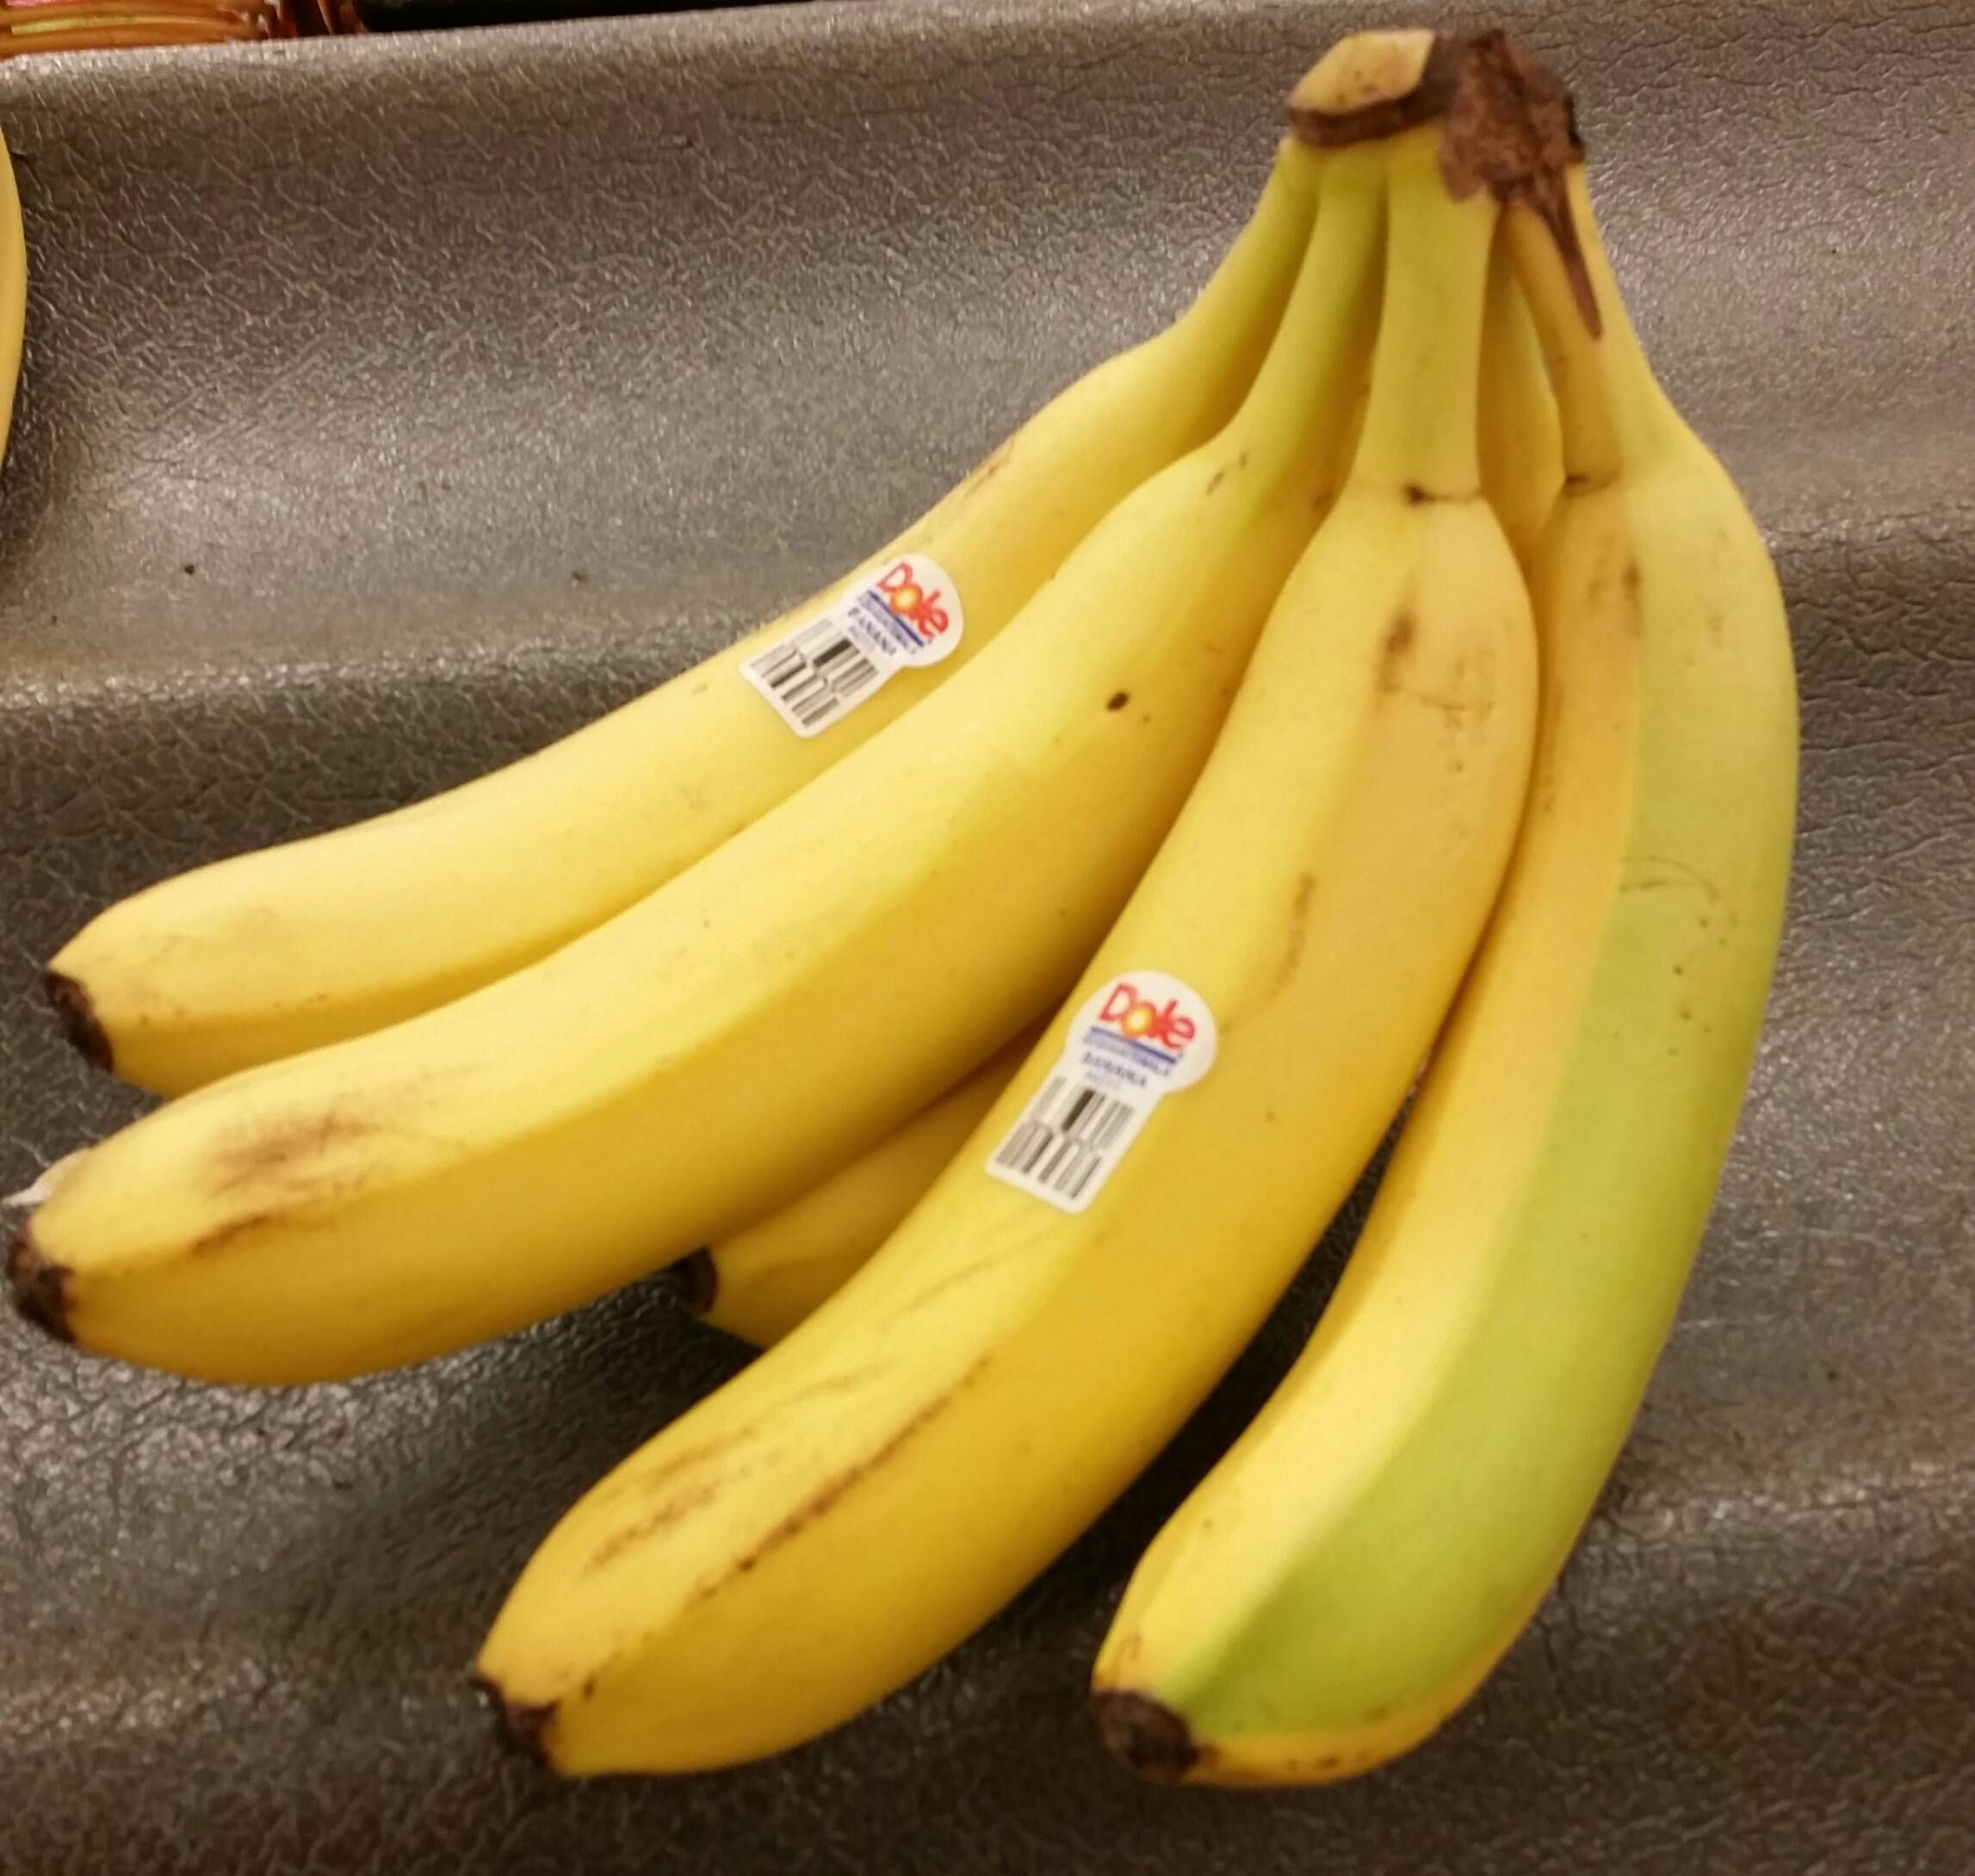 This one green peel on this banana pets funny pinterest